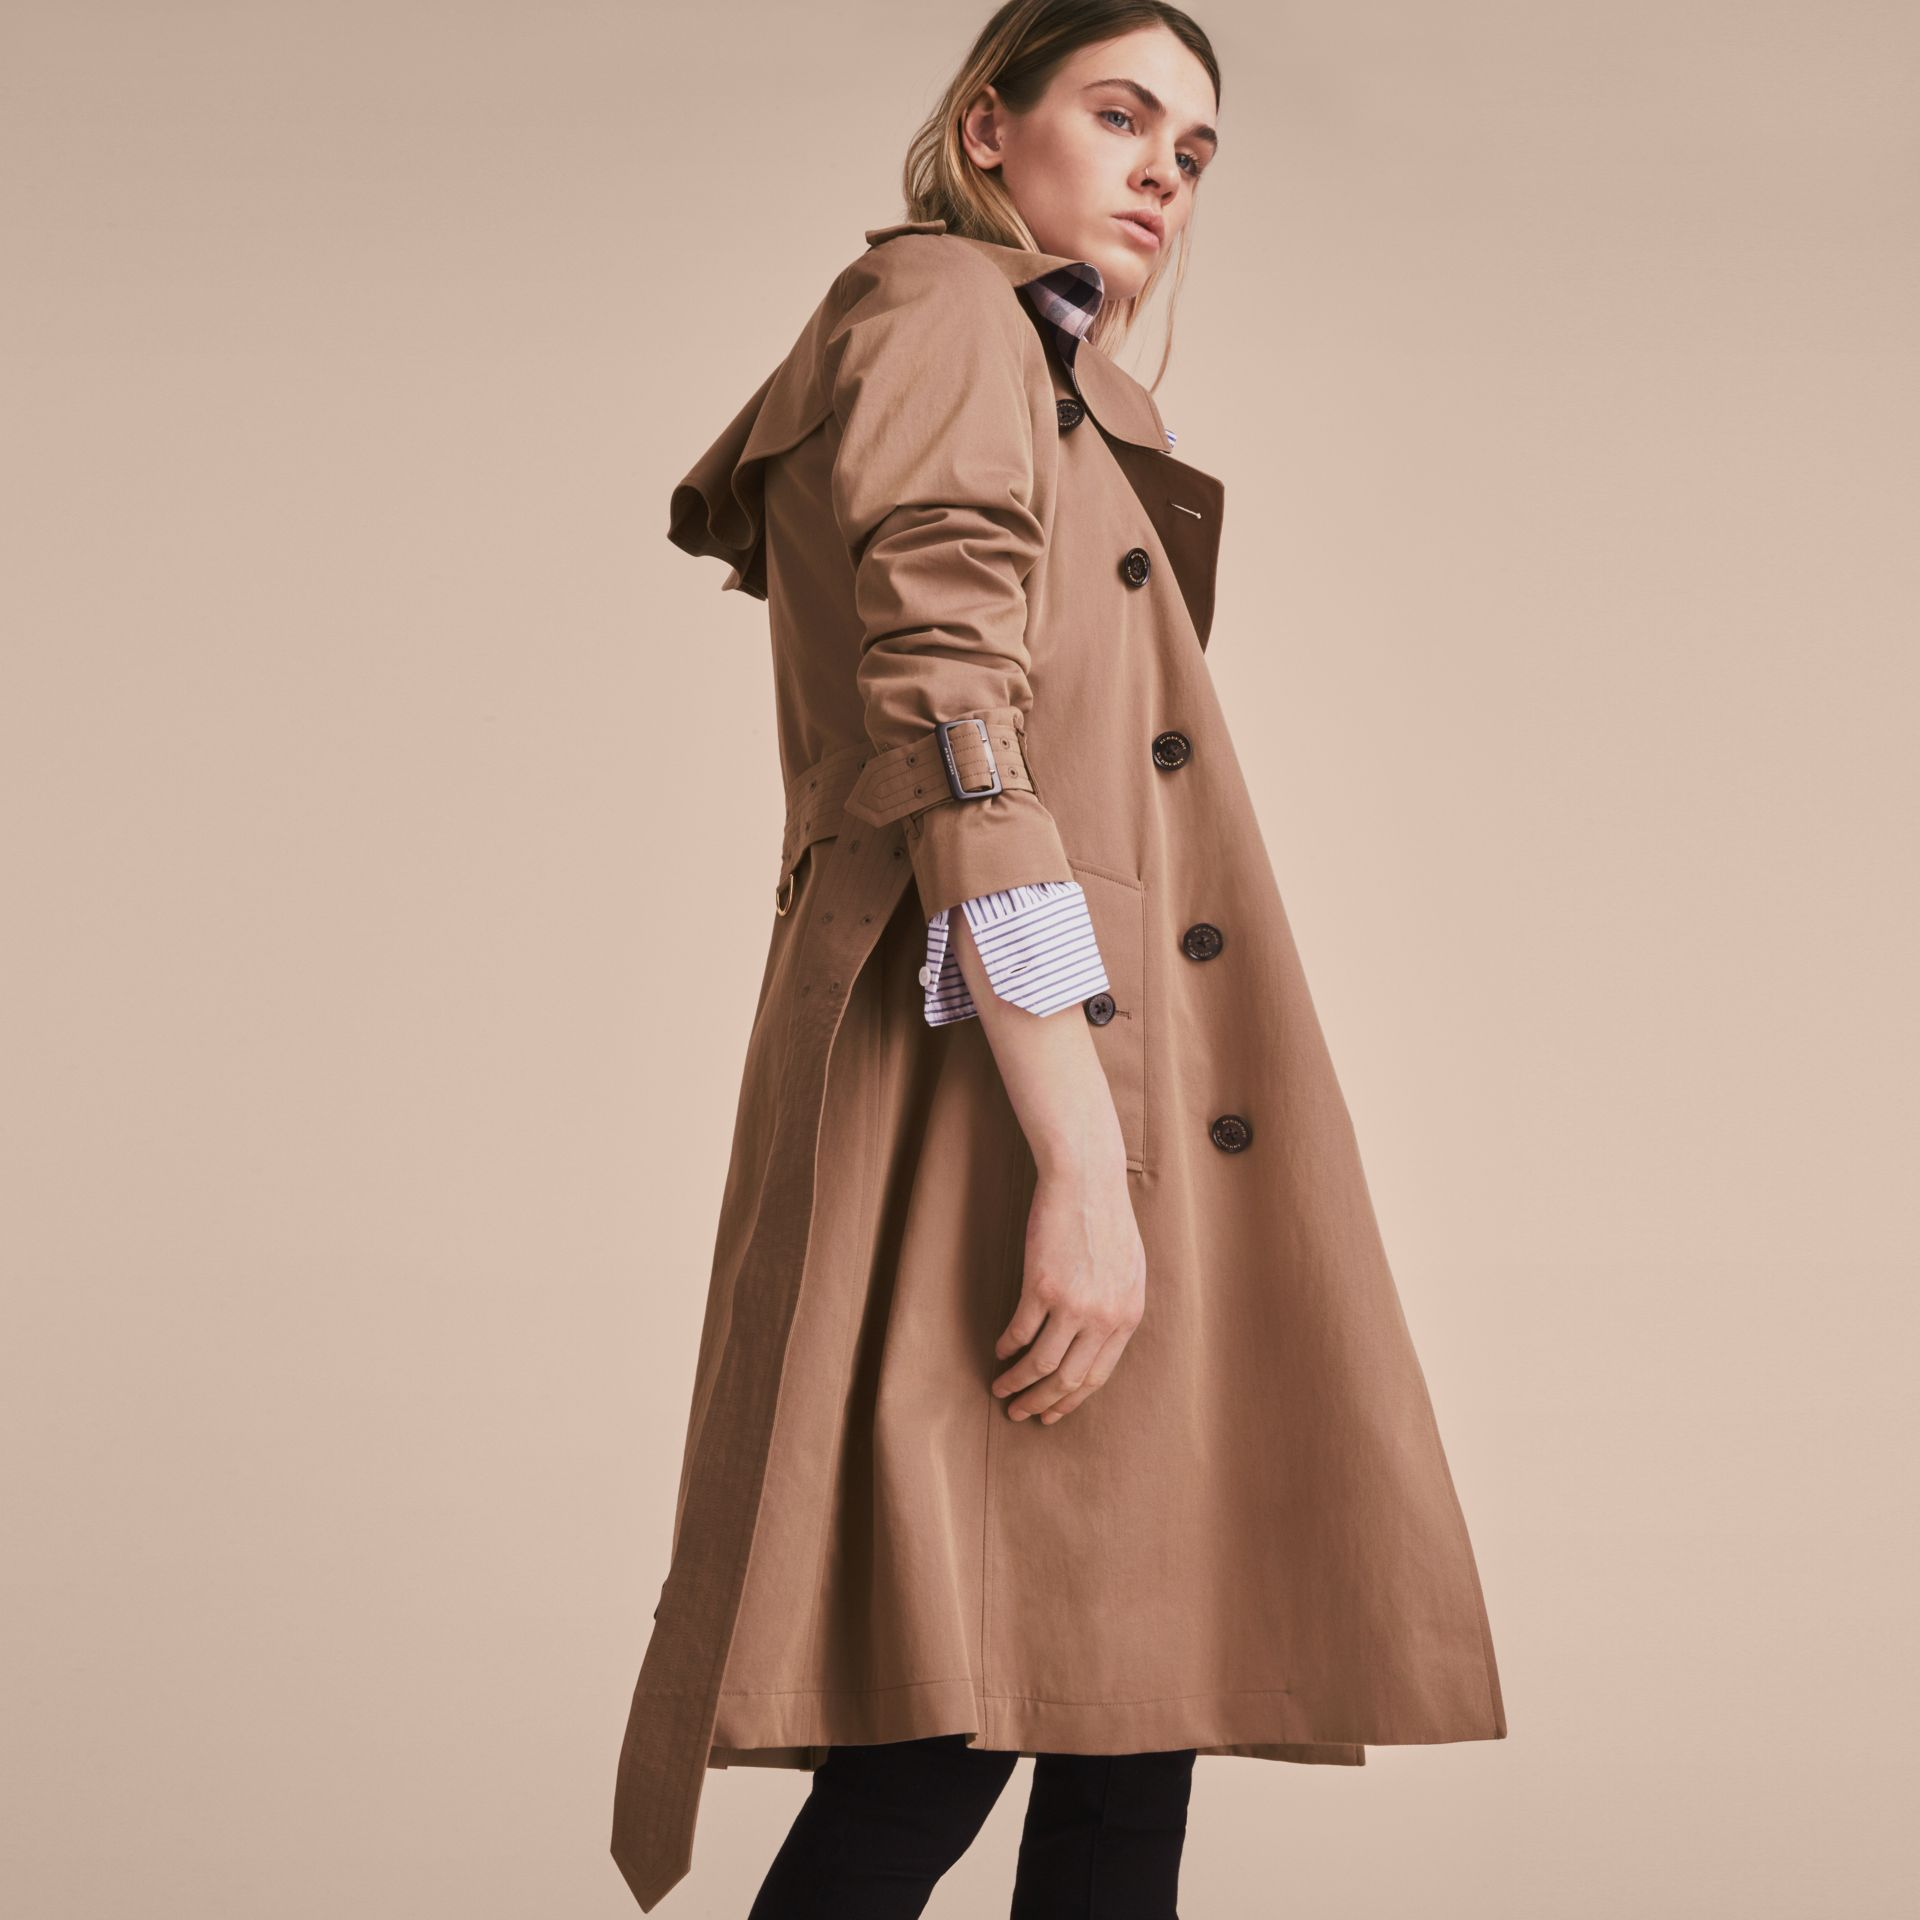 Tropical Gabardine Trench Coat with Ruffle Detail in Taupe - Women | Burberry Hong Kong - gallery image 7